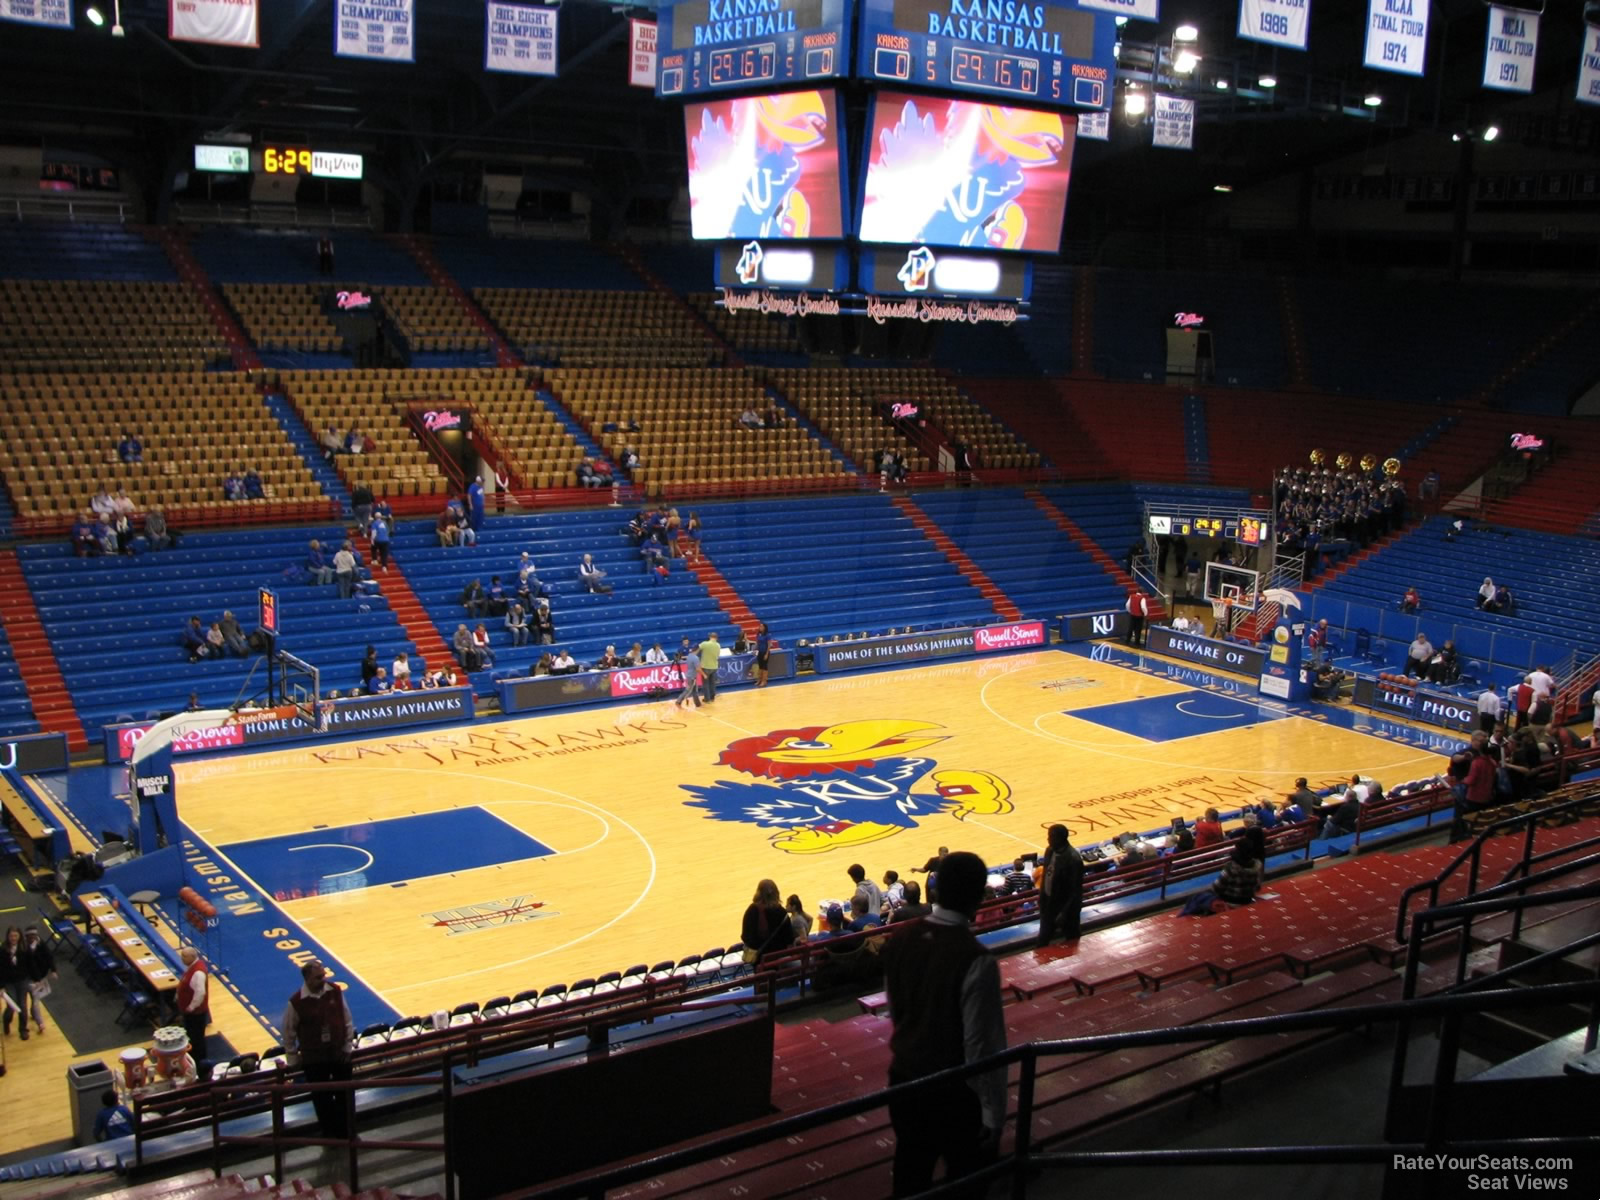 Seat View for Allen Fieldhouse Section 20, Row 18